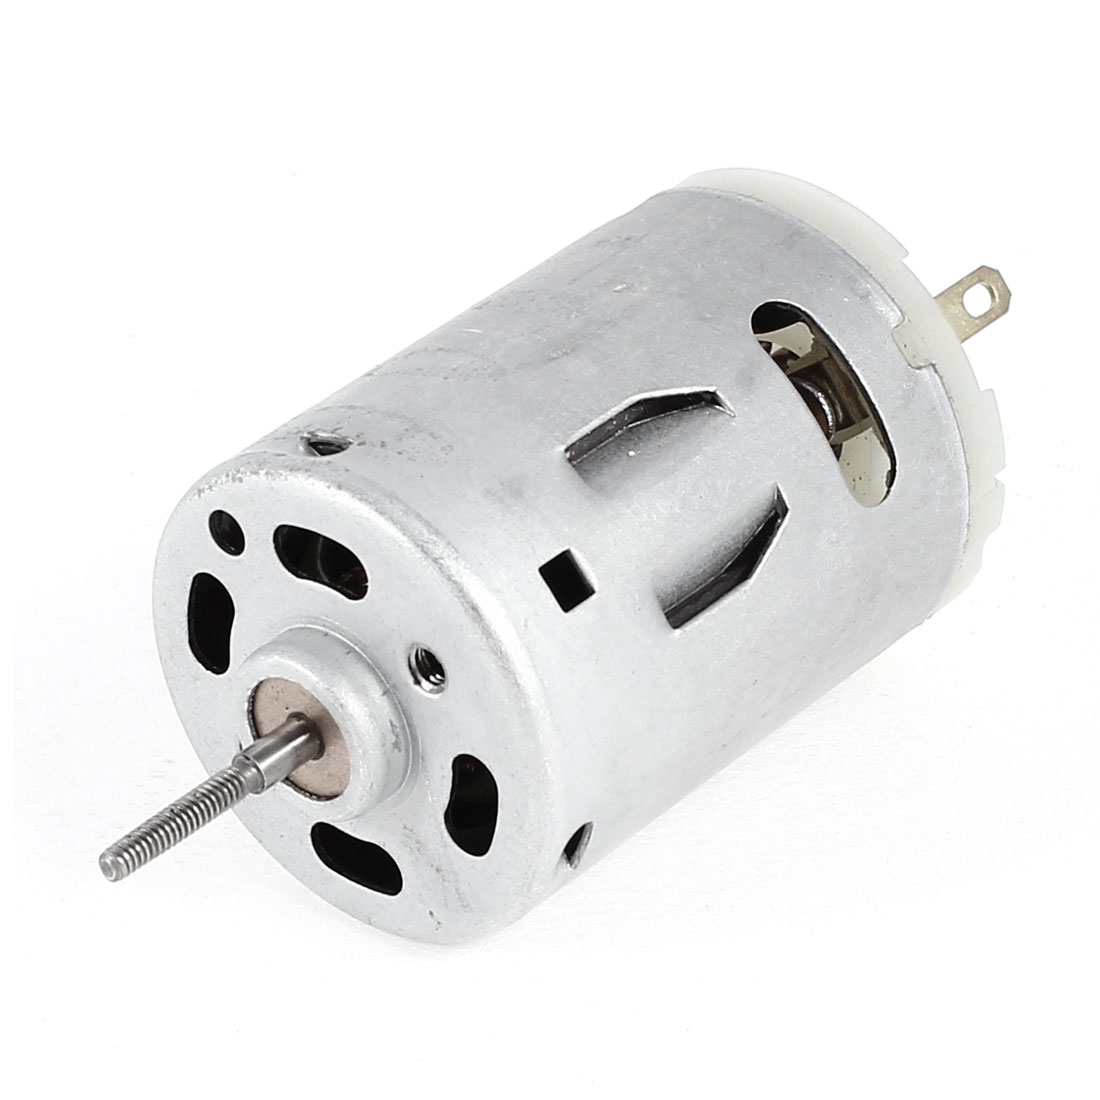 RS385SD DC 12V-24V 4650-9300RPM Rotary Speed Cylinder Shape Micro Electric Motor